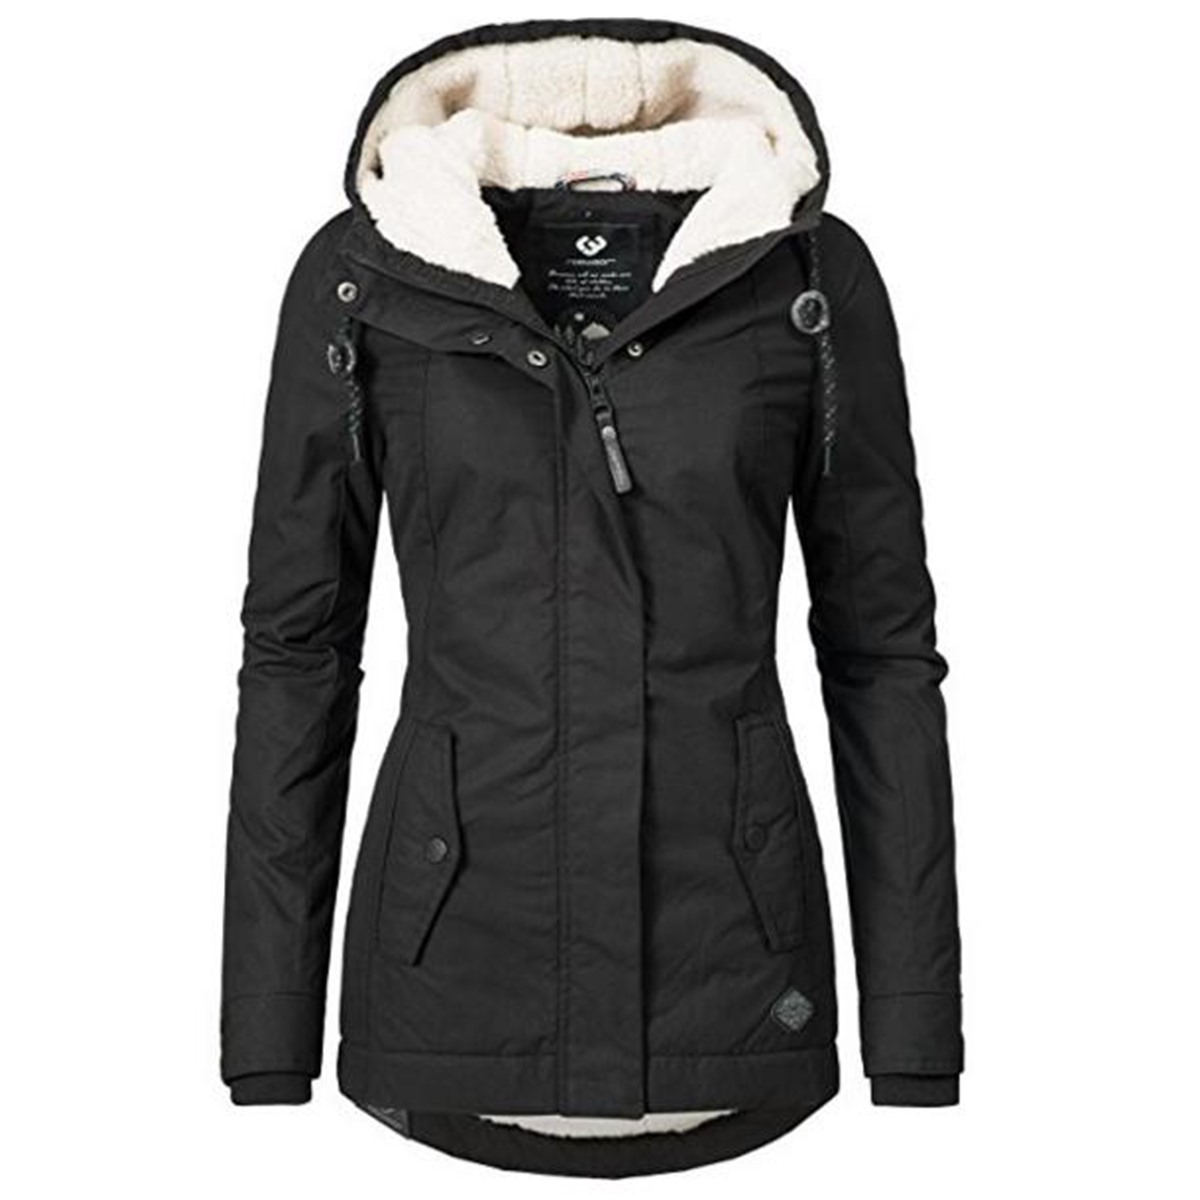 Women Winter Jacket Coat Cotton Windproof Slim Outerwear Fashion Elastic Waist Zipper Pocket Hooded Drawstring Overcoats Autumn